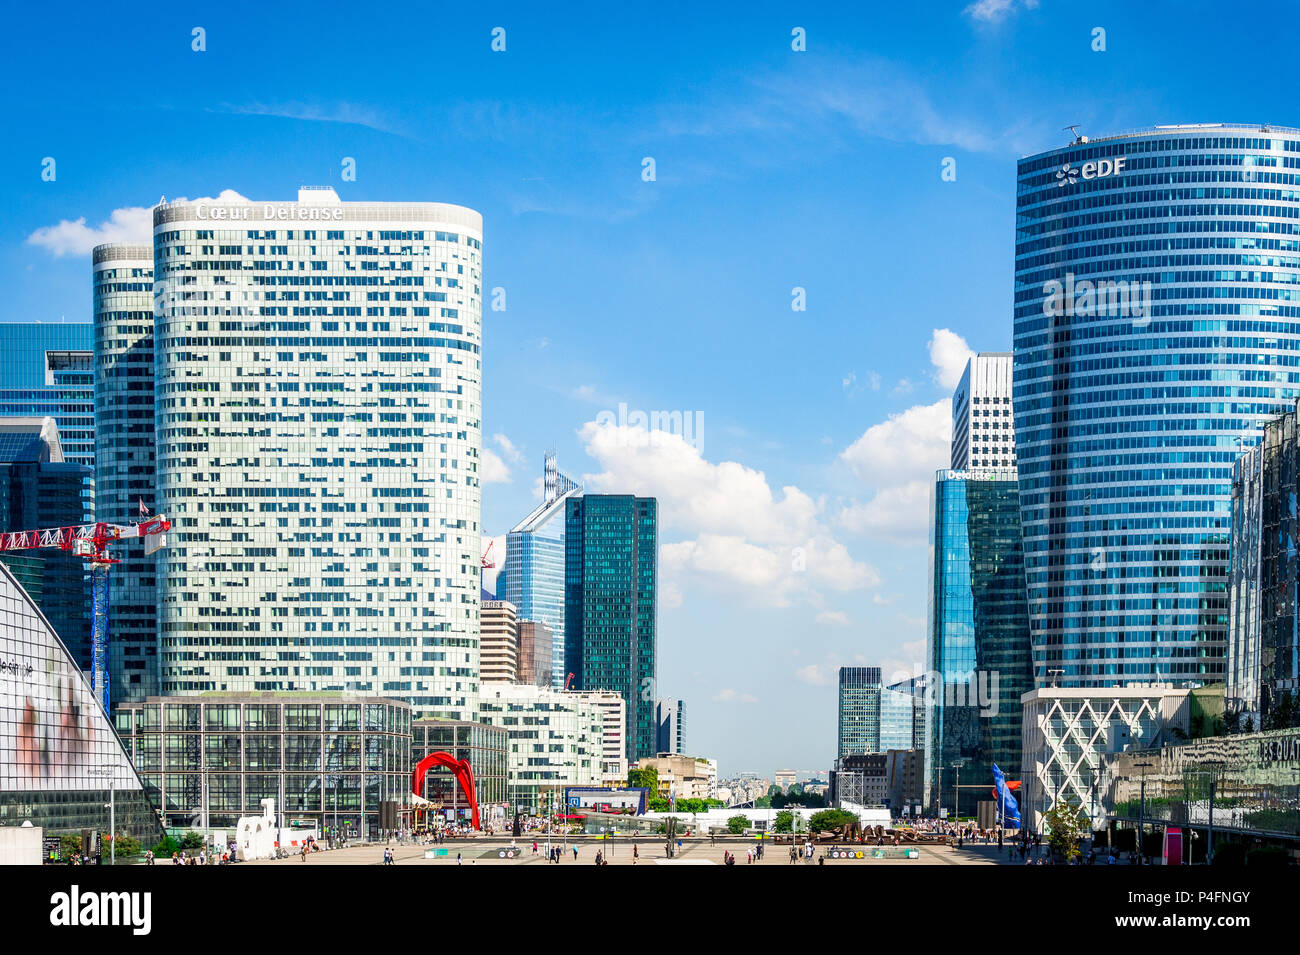 The strange yet wonderful La Defense area in Paris, France that houses an open-air museum. - Stock Image